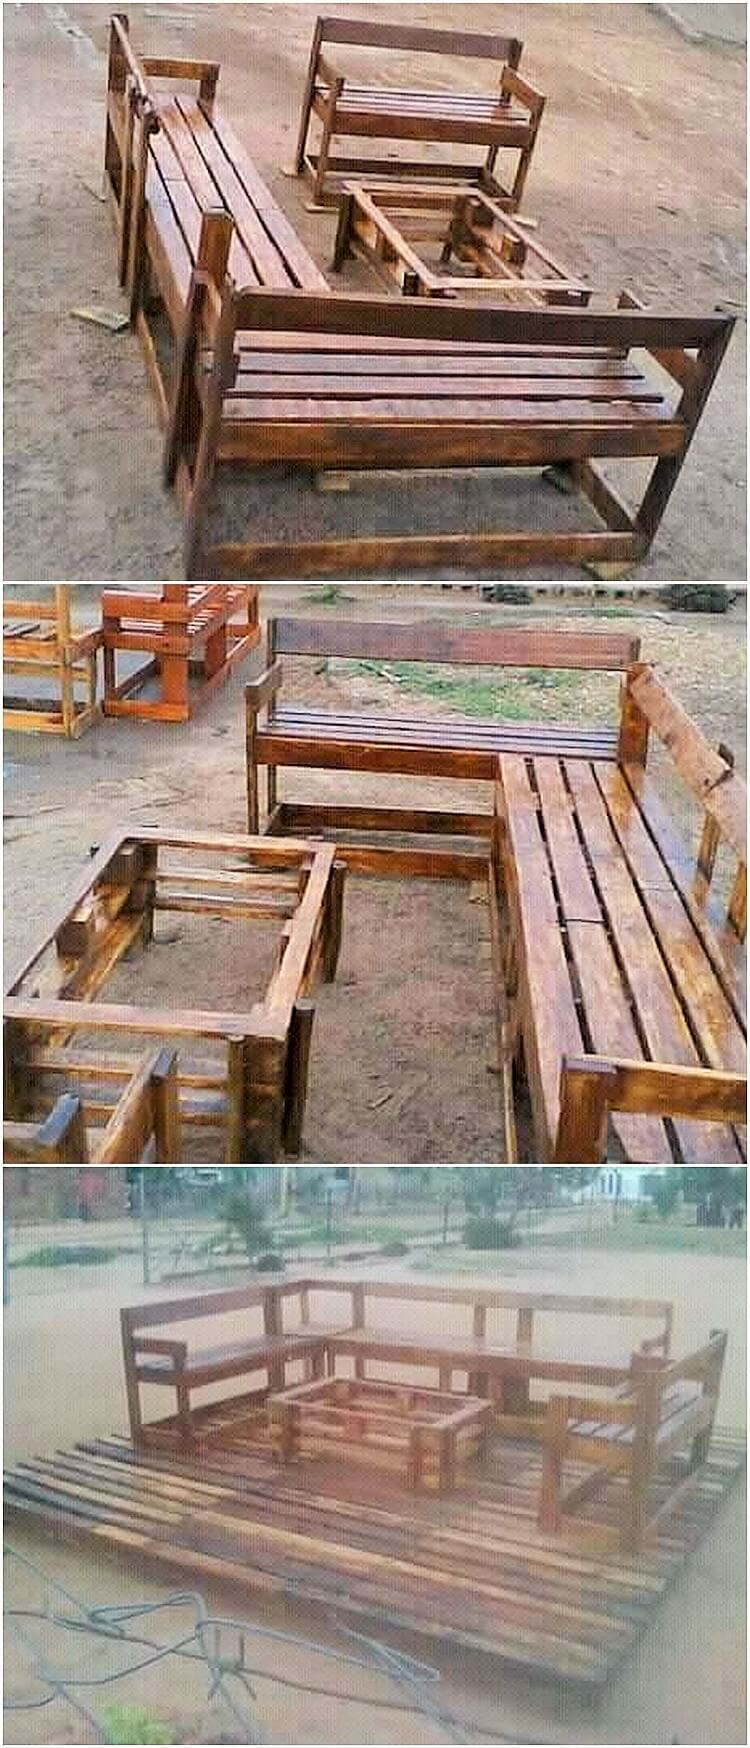 Old-Pallet- Diy-Recycle-Things-Projects-14